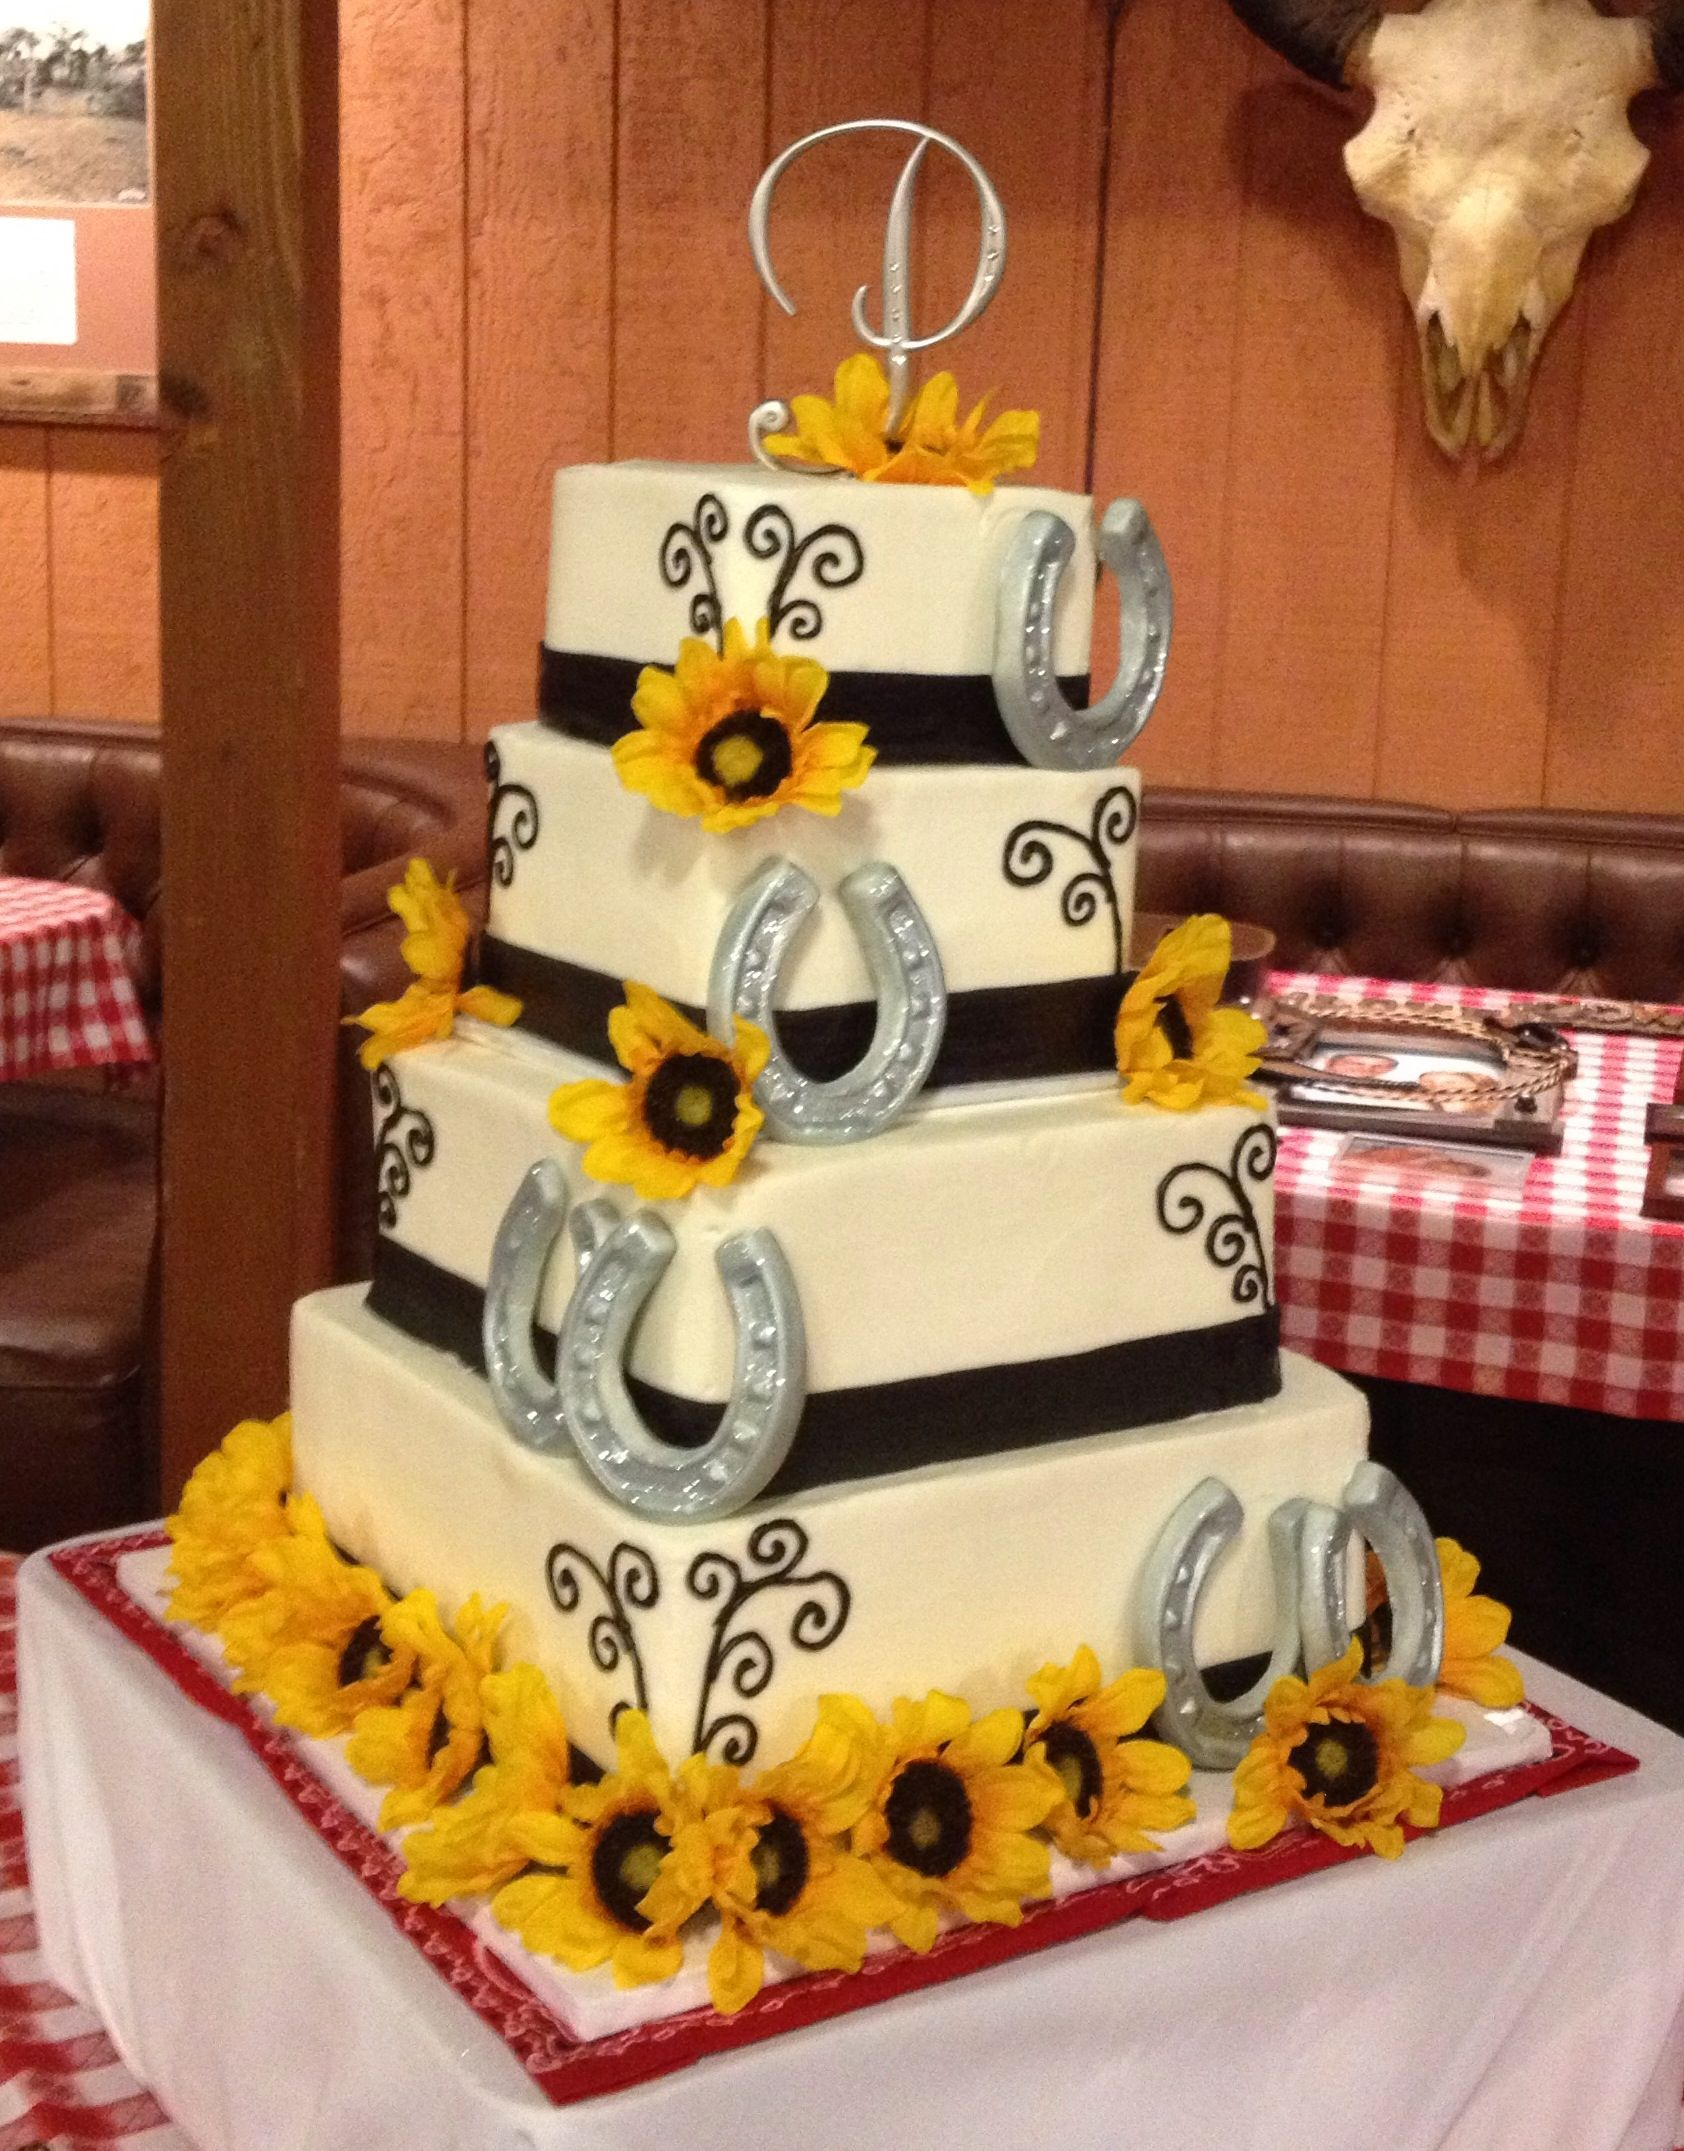 Western wedding cakee the idea but with orange gerber daisies